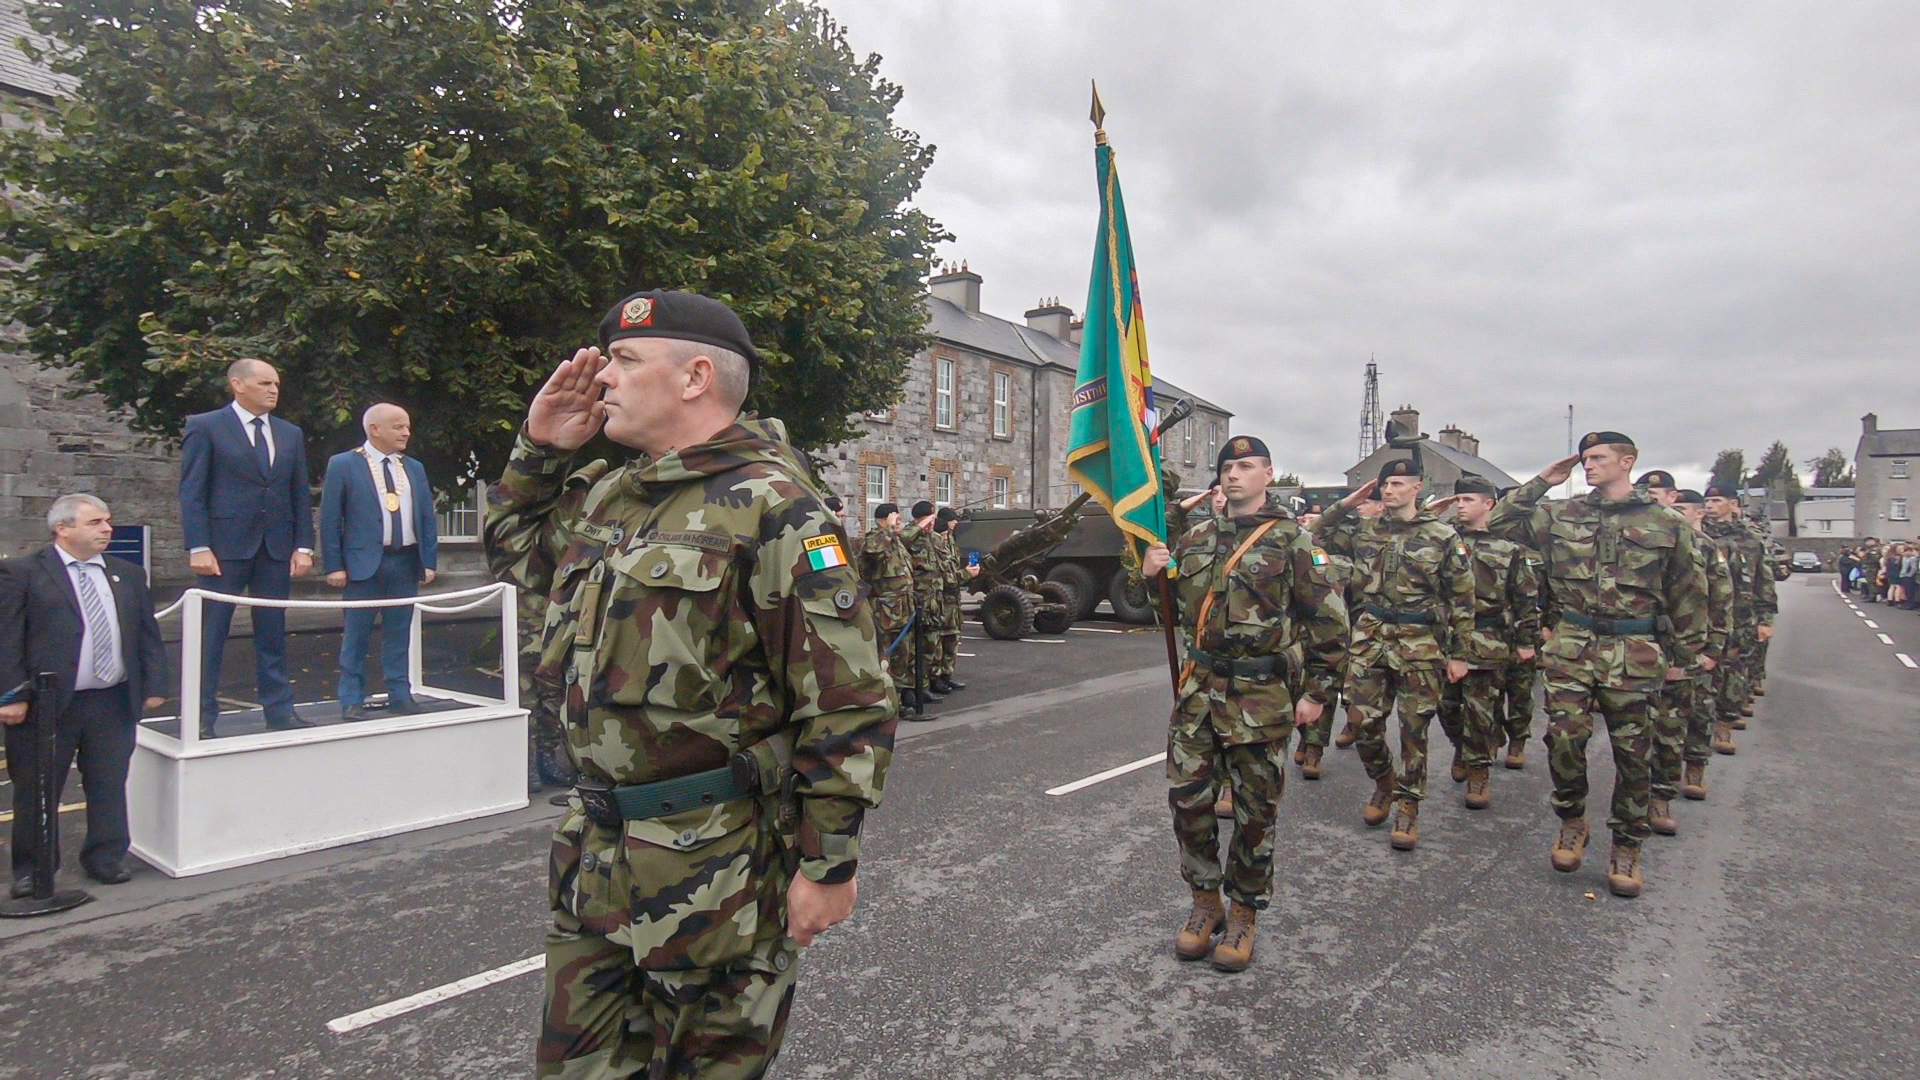 Minister Paul Kehoe Reviews Irish Troops heading for service with UNDOF